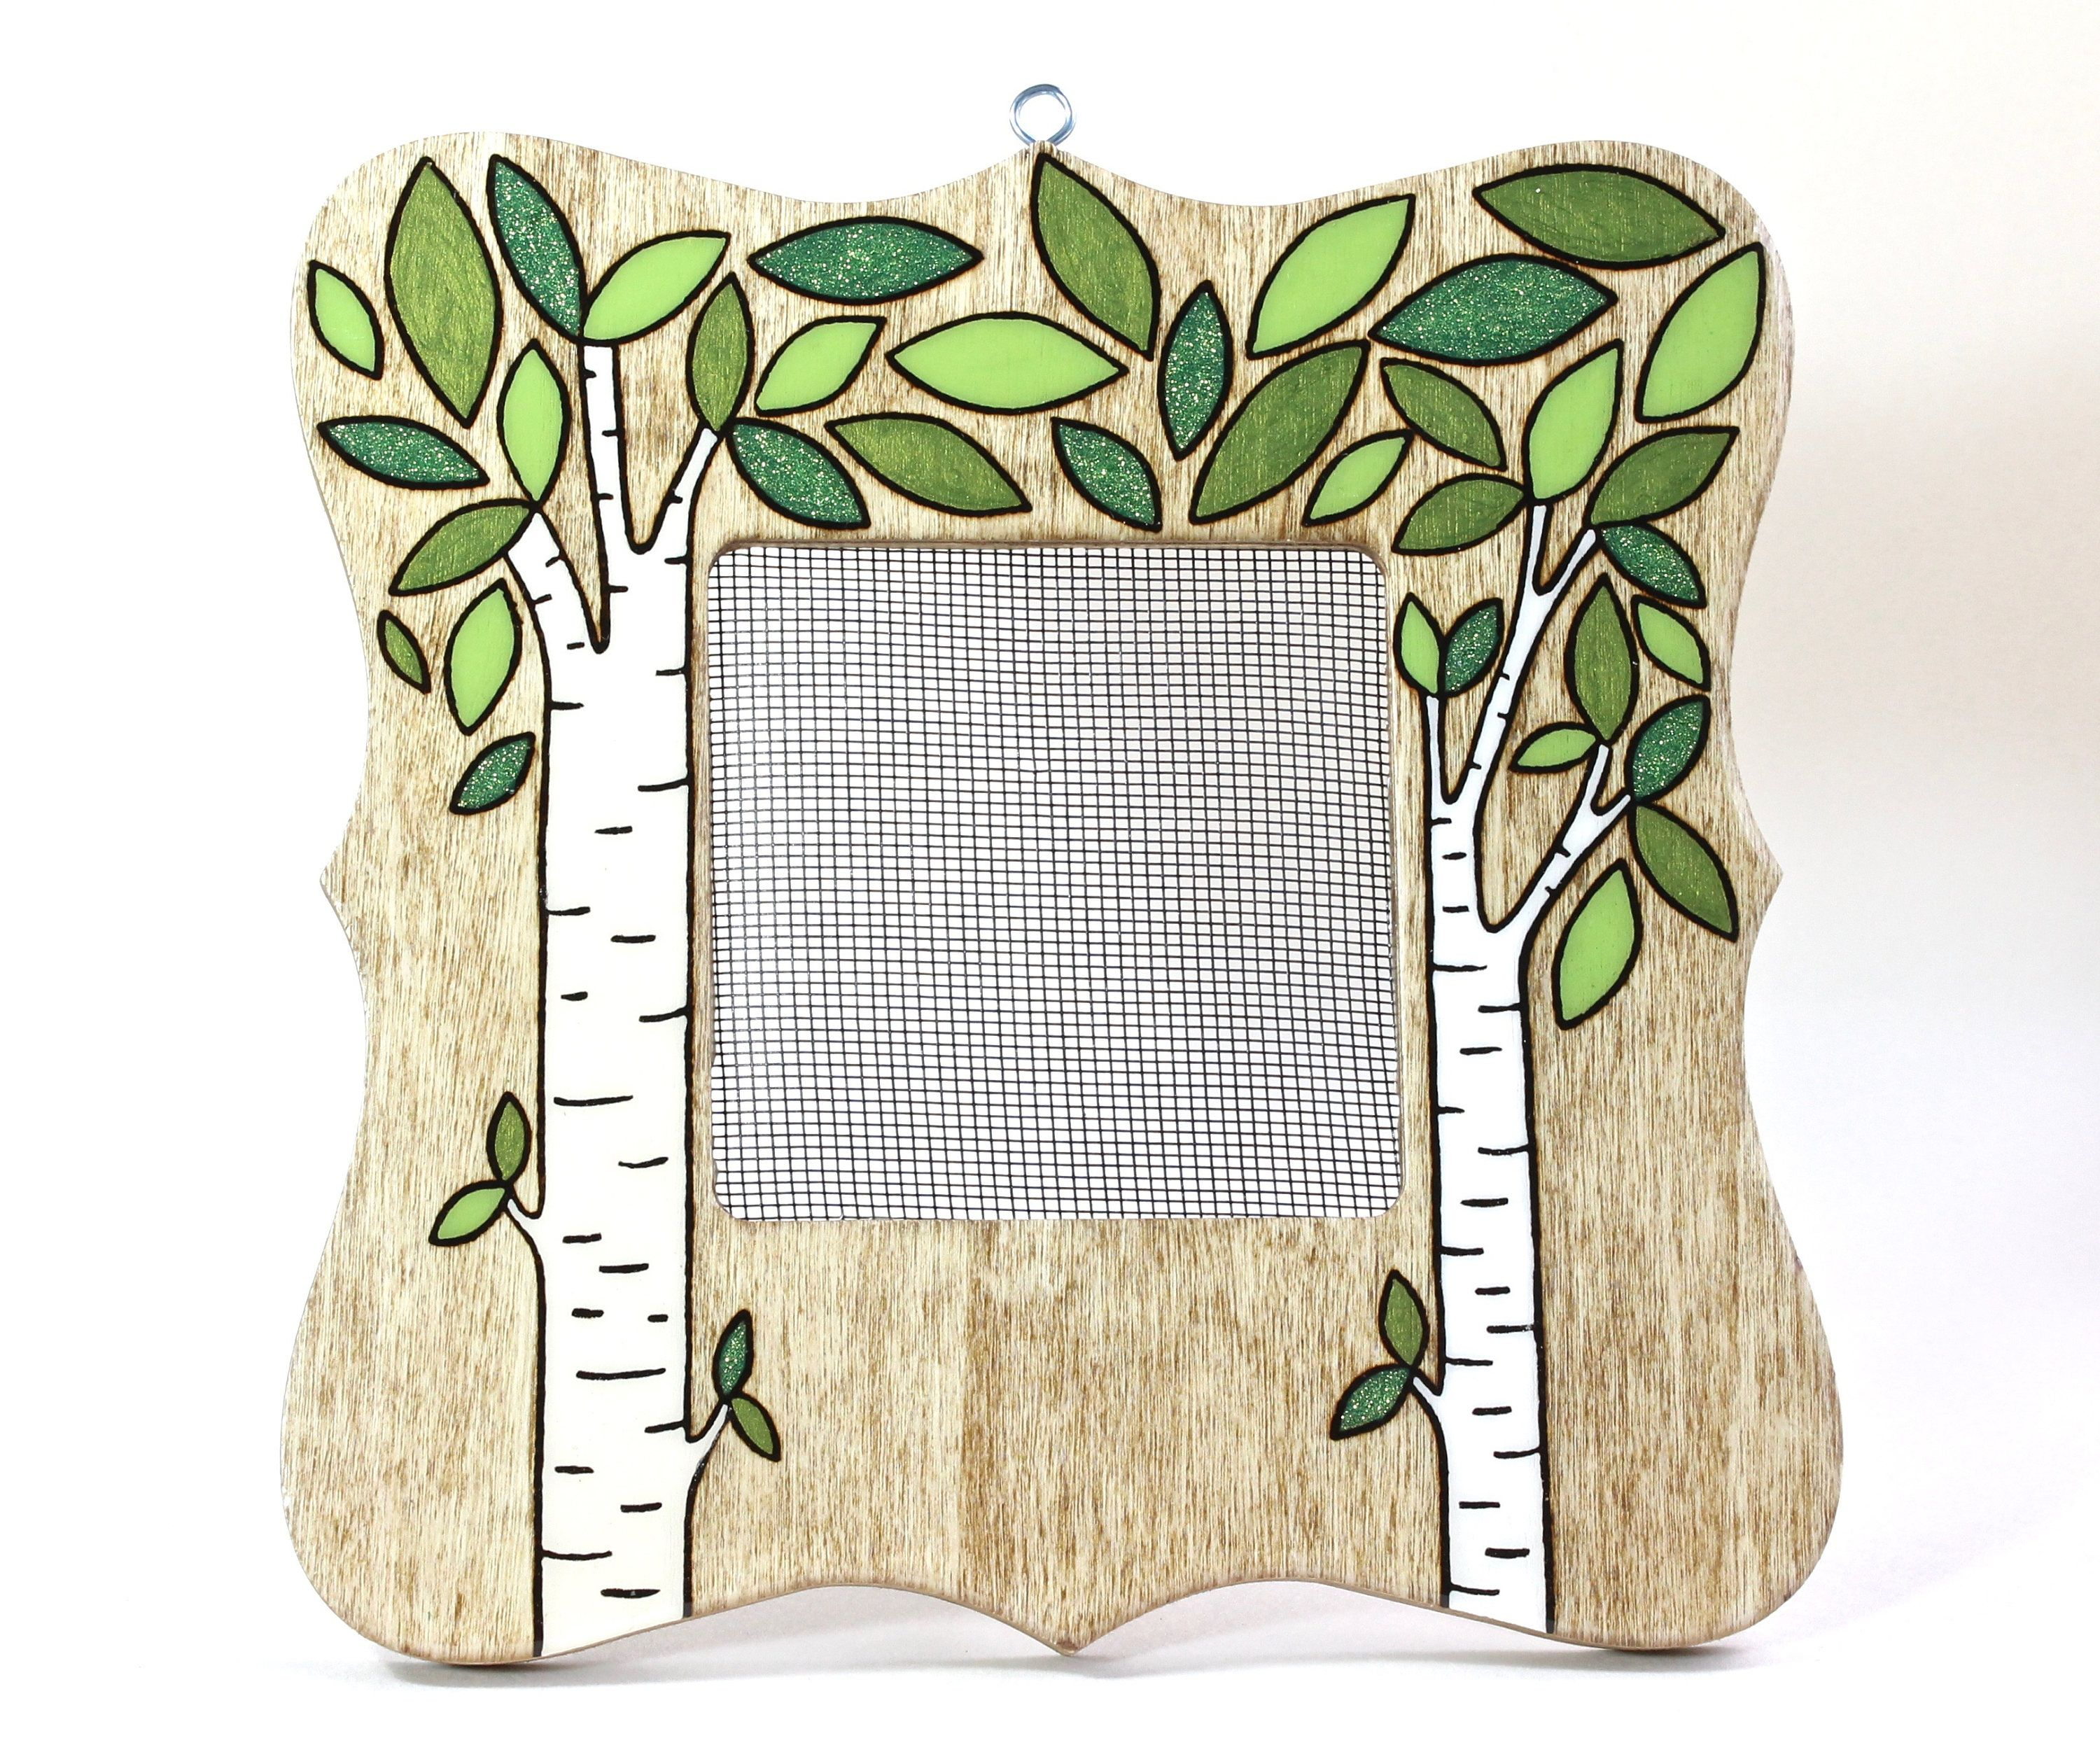 Earring Organizer Frame Display Stand, Wood Burned Birch Tree Jewelry